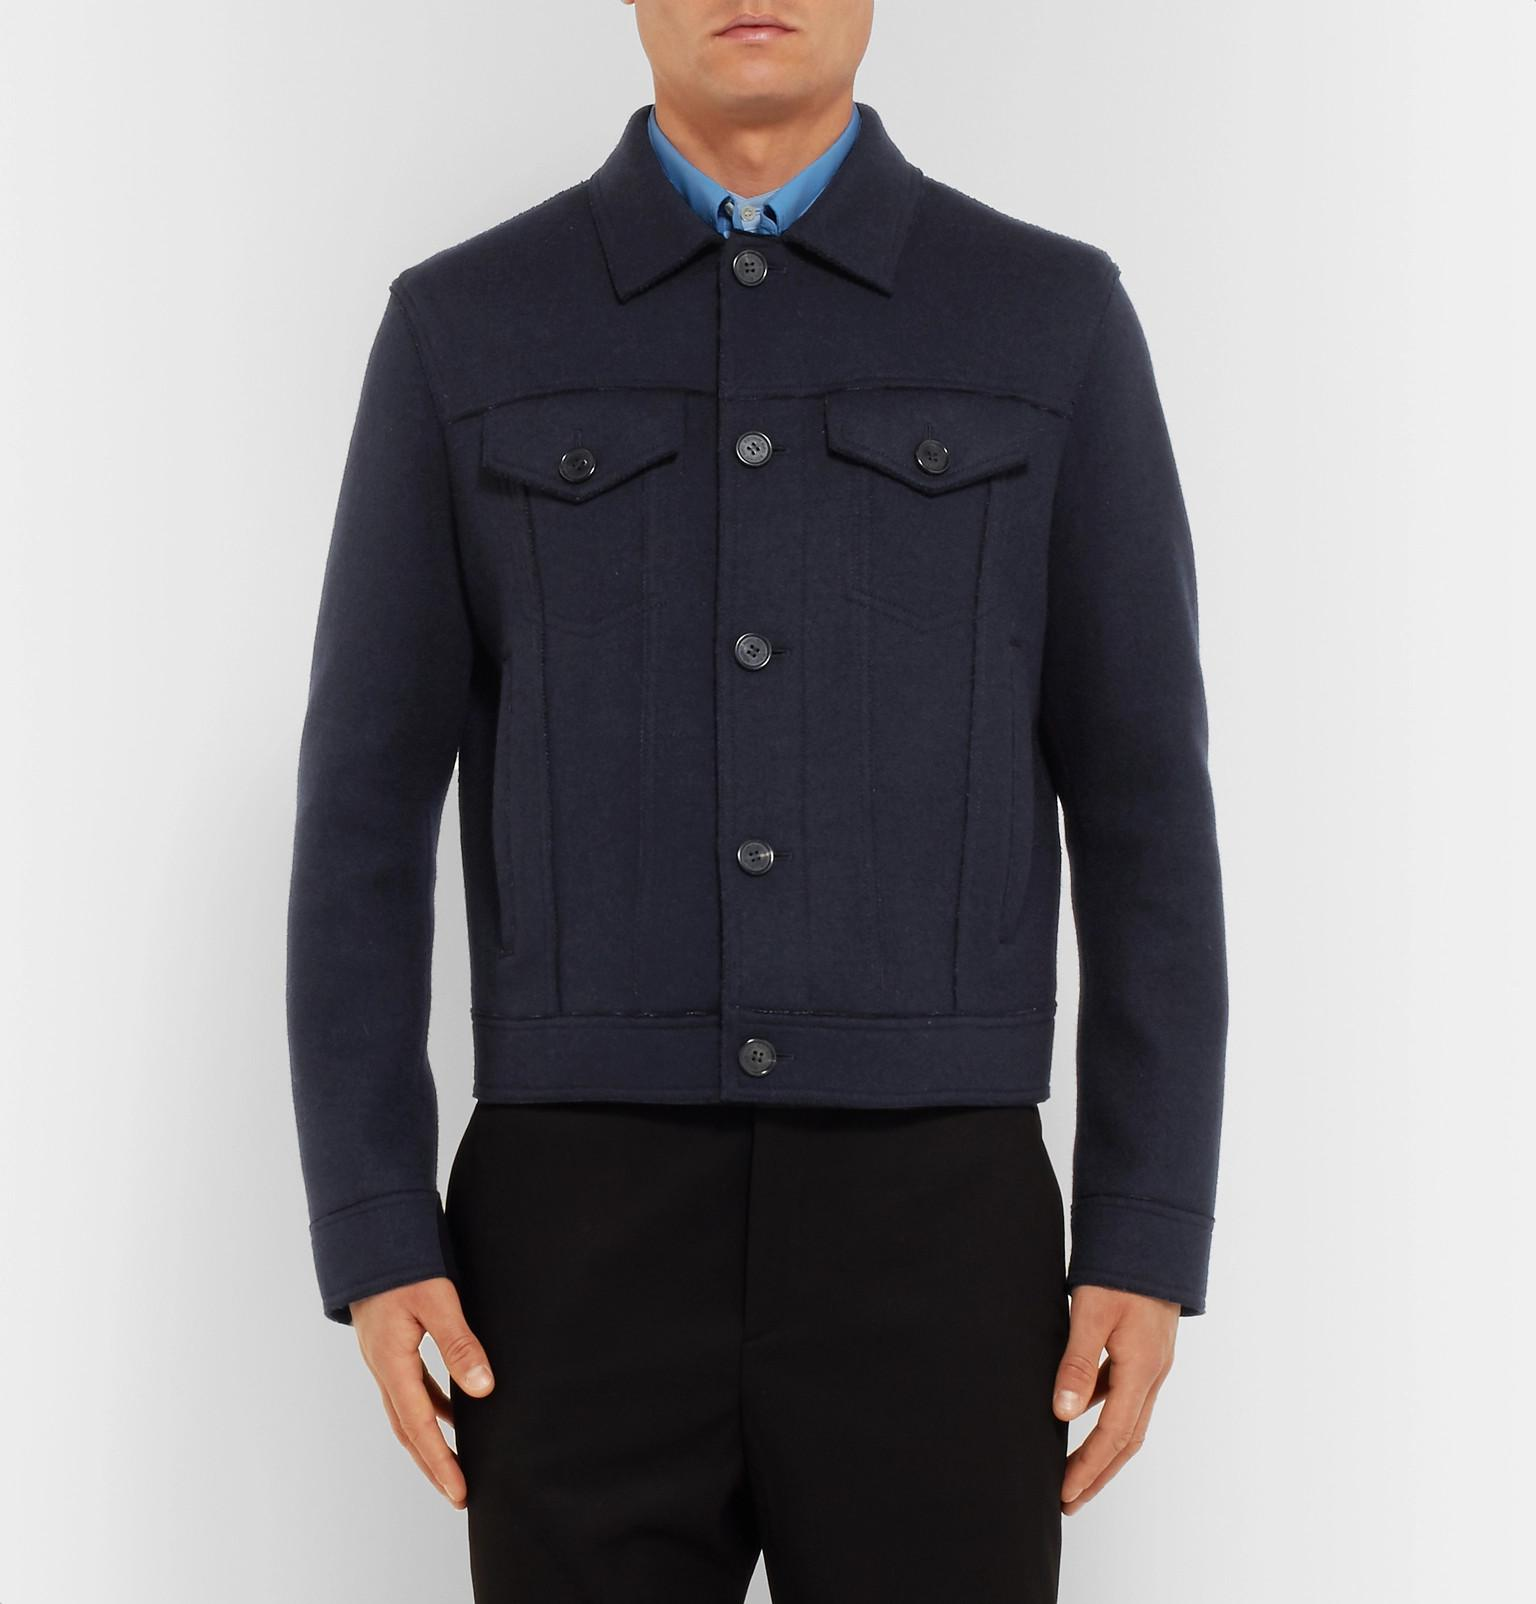 online store 0b6b0 efc5f neil-barrett-navy-Wool-blend-Trucker-Jacket.jpeg